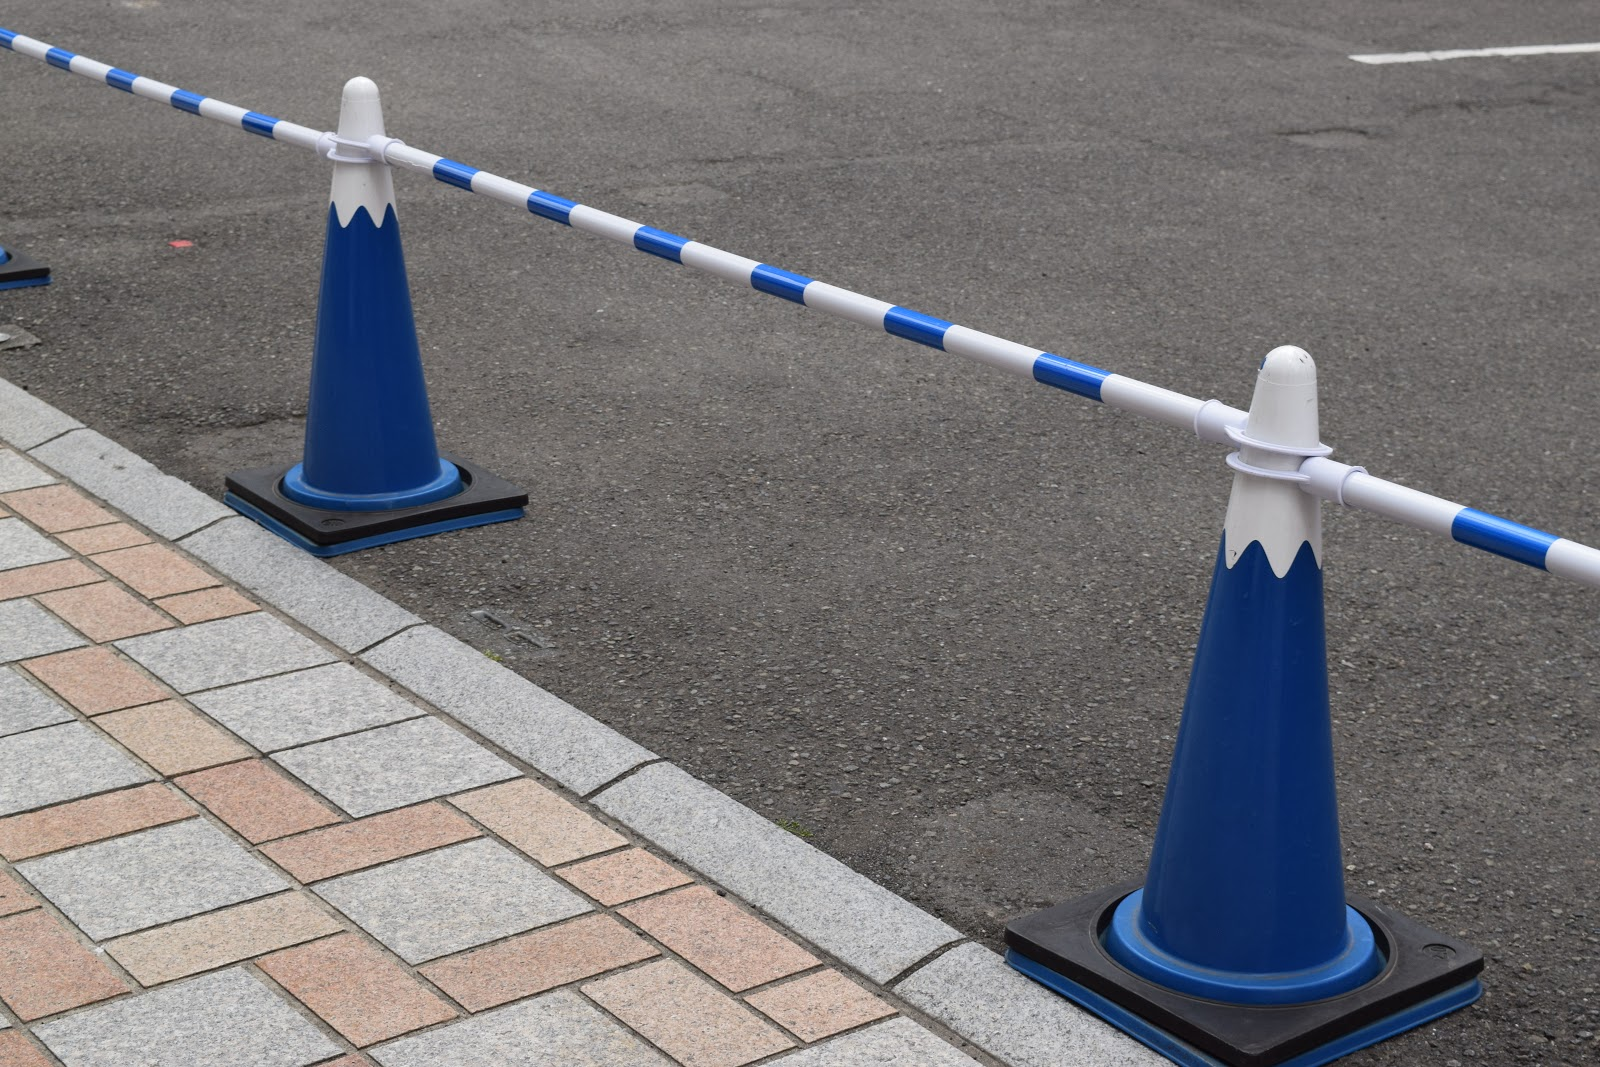 Mt Fuji traffic cones in Shizuoka city, Japan